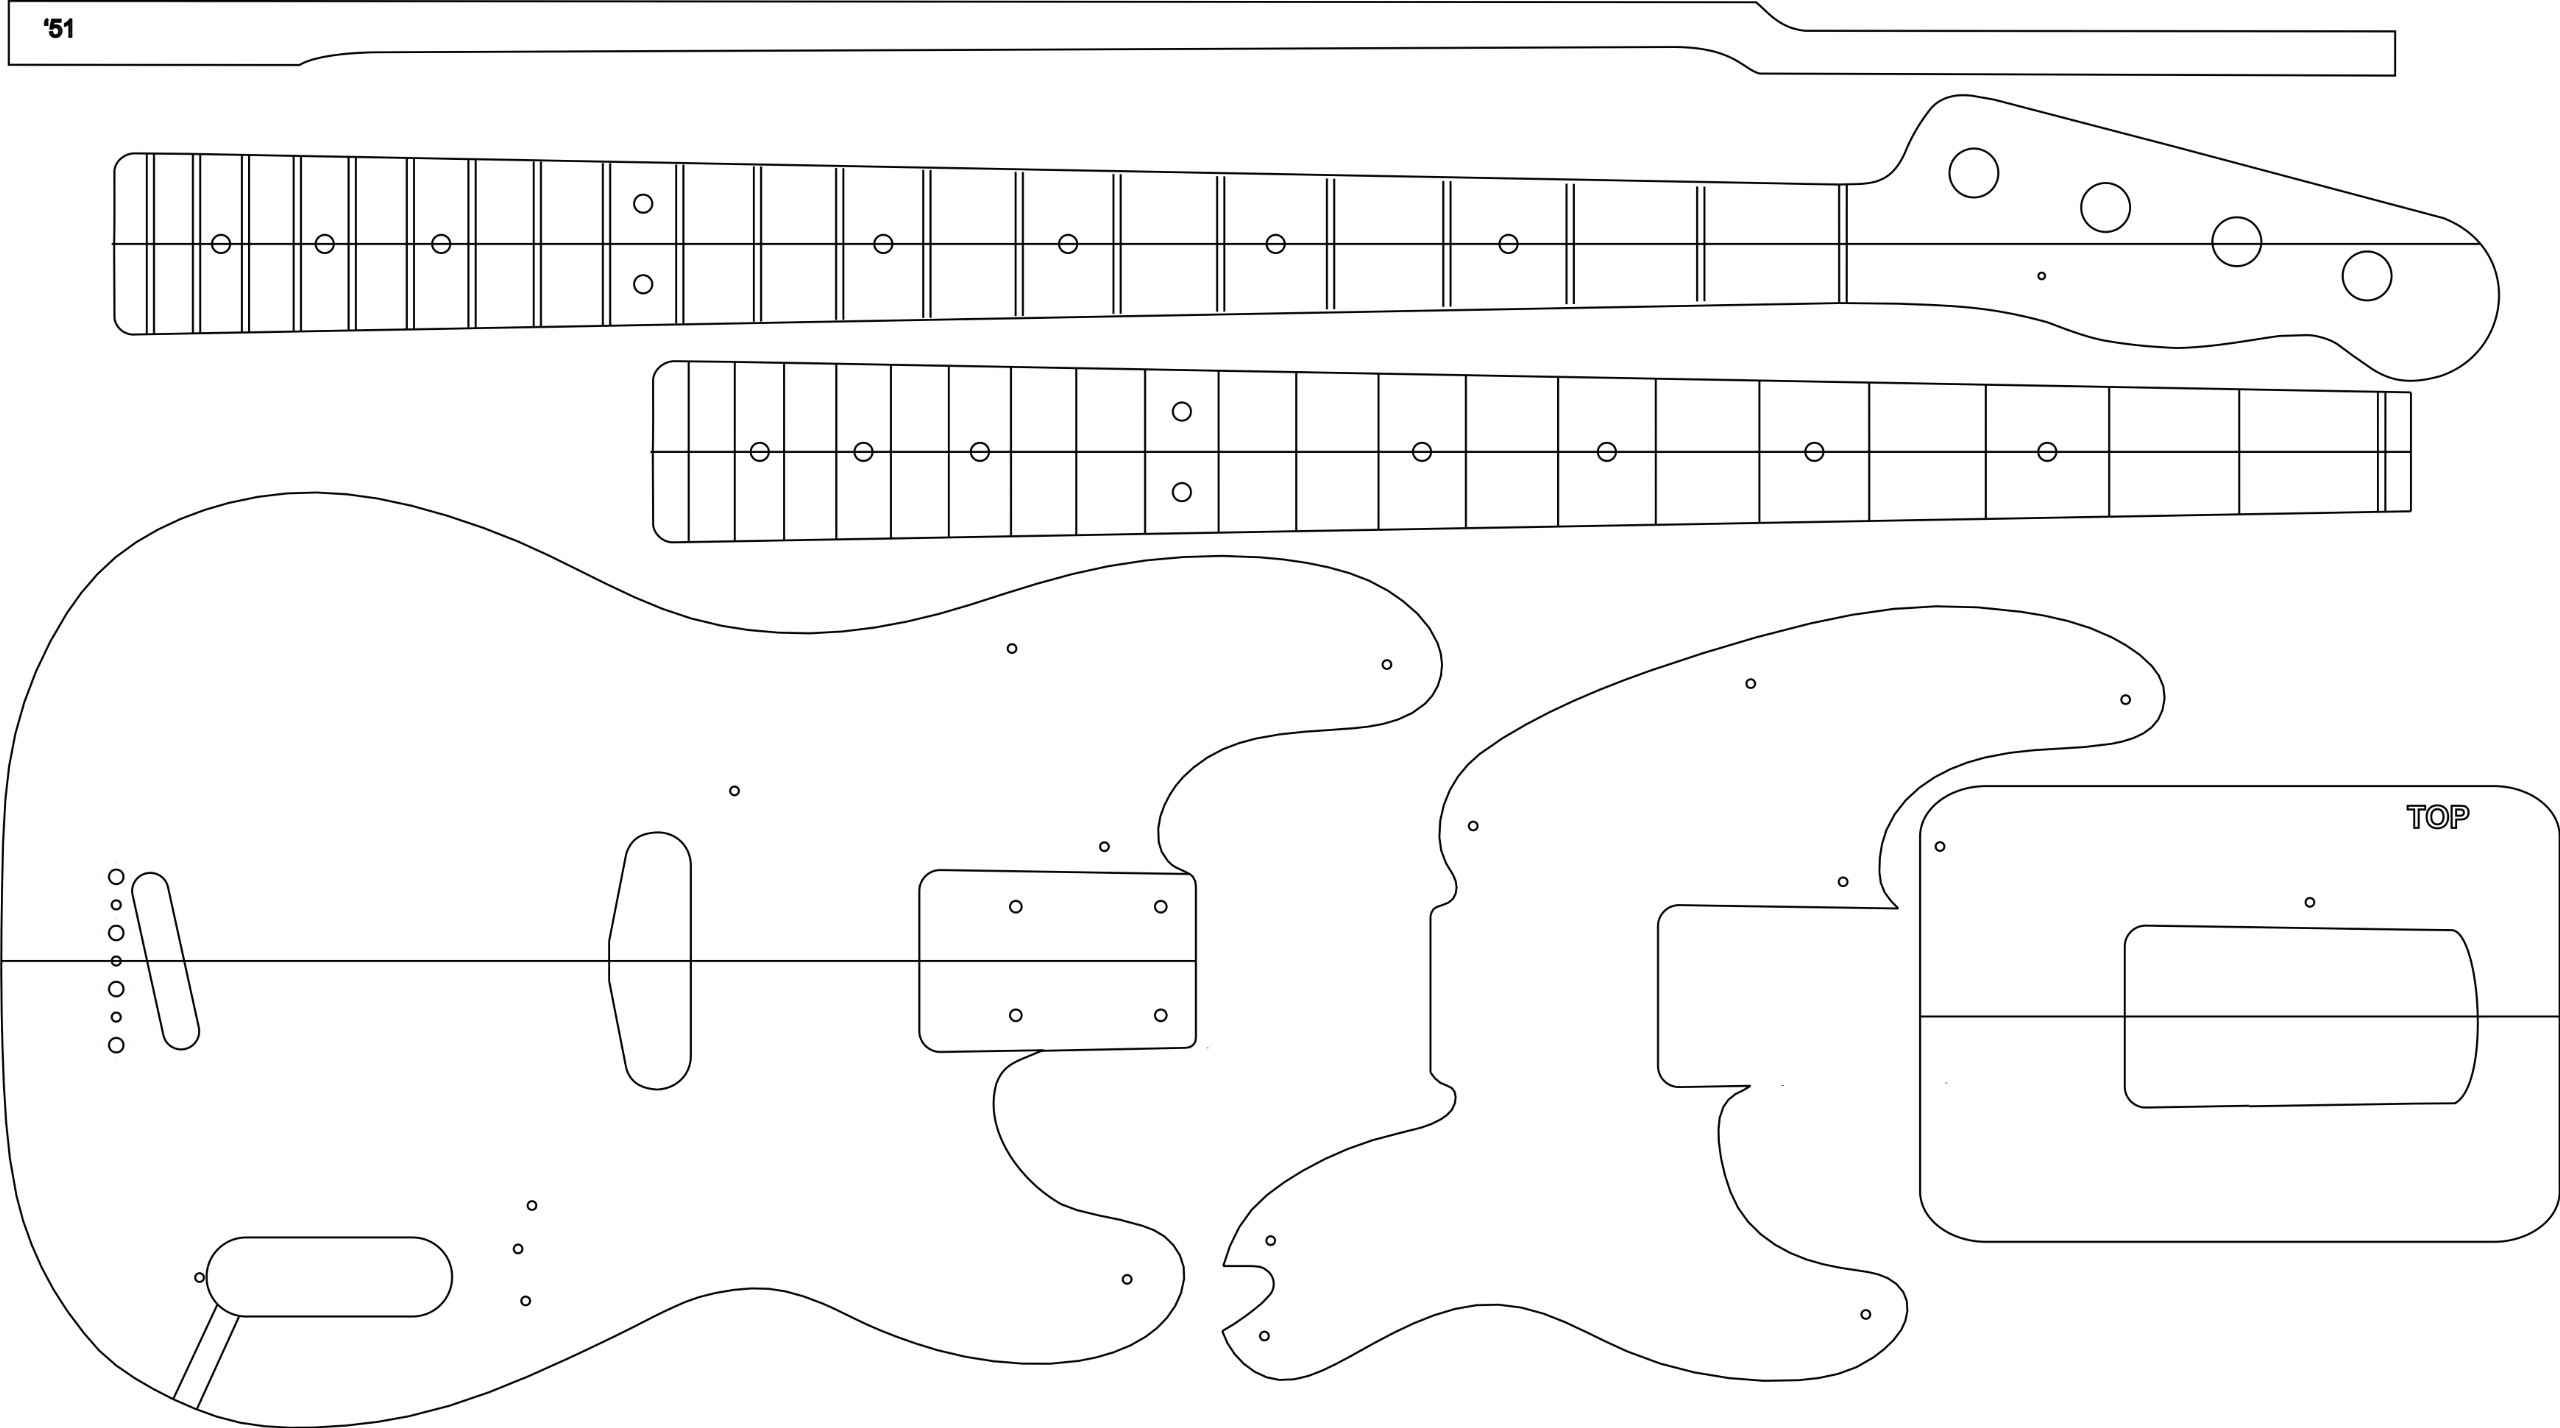 Electric Guitar Layout Template - '51 P BASS